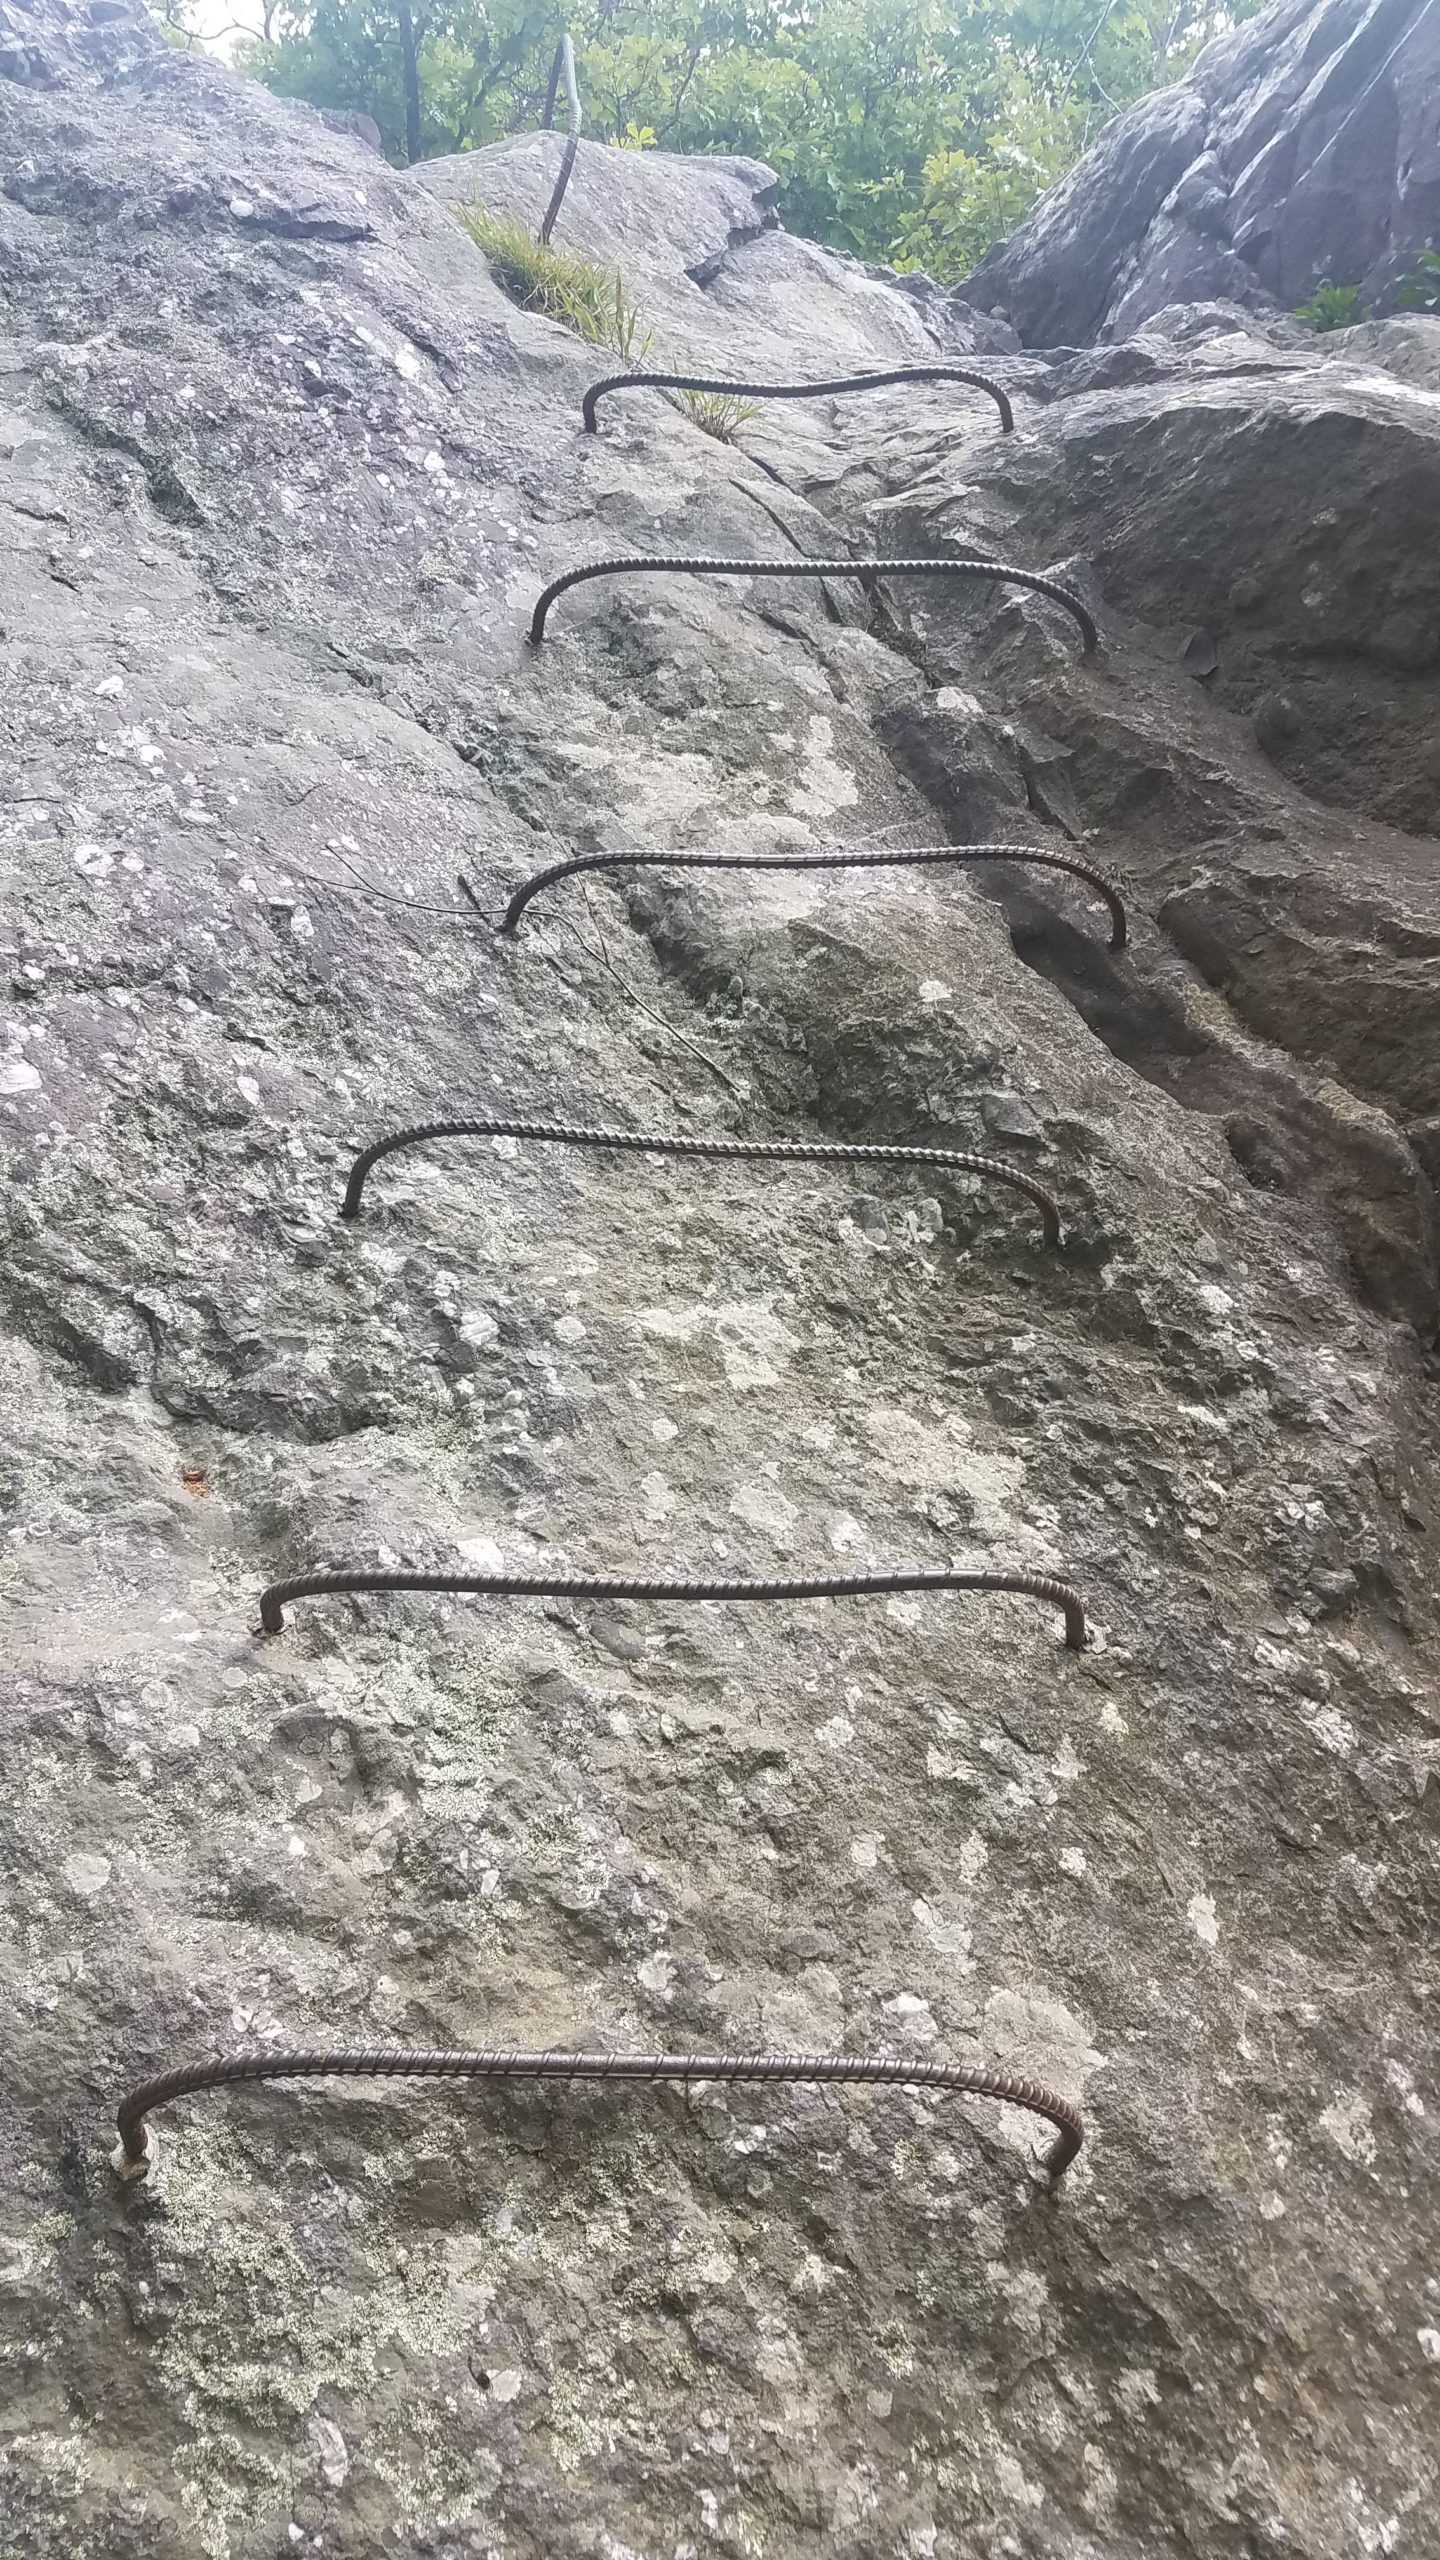 rebar ladder drilled into rocks on the trail